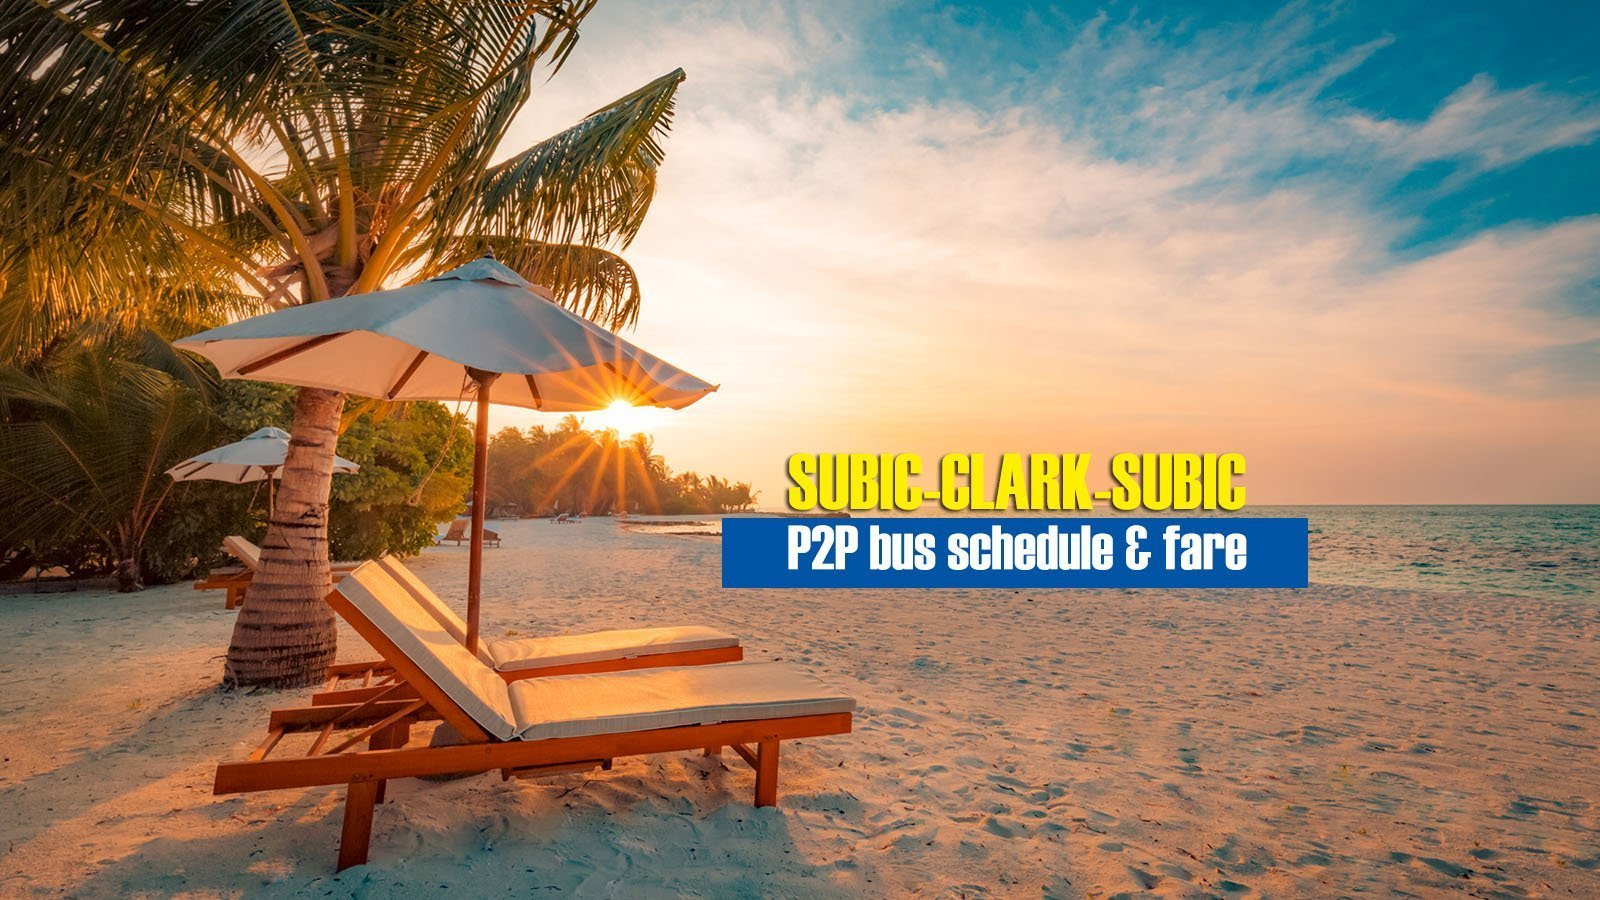 Subic to Clark Airport: P2P Bus Schedule